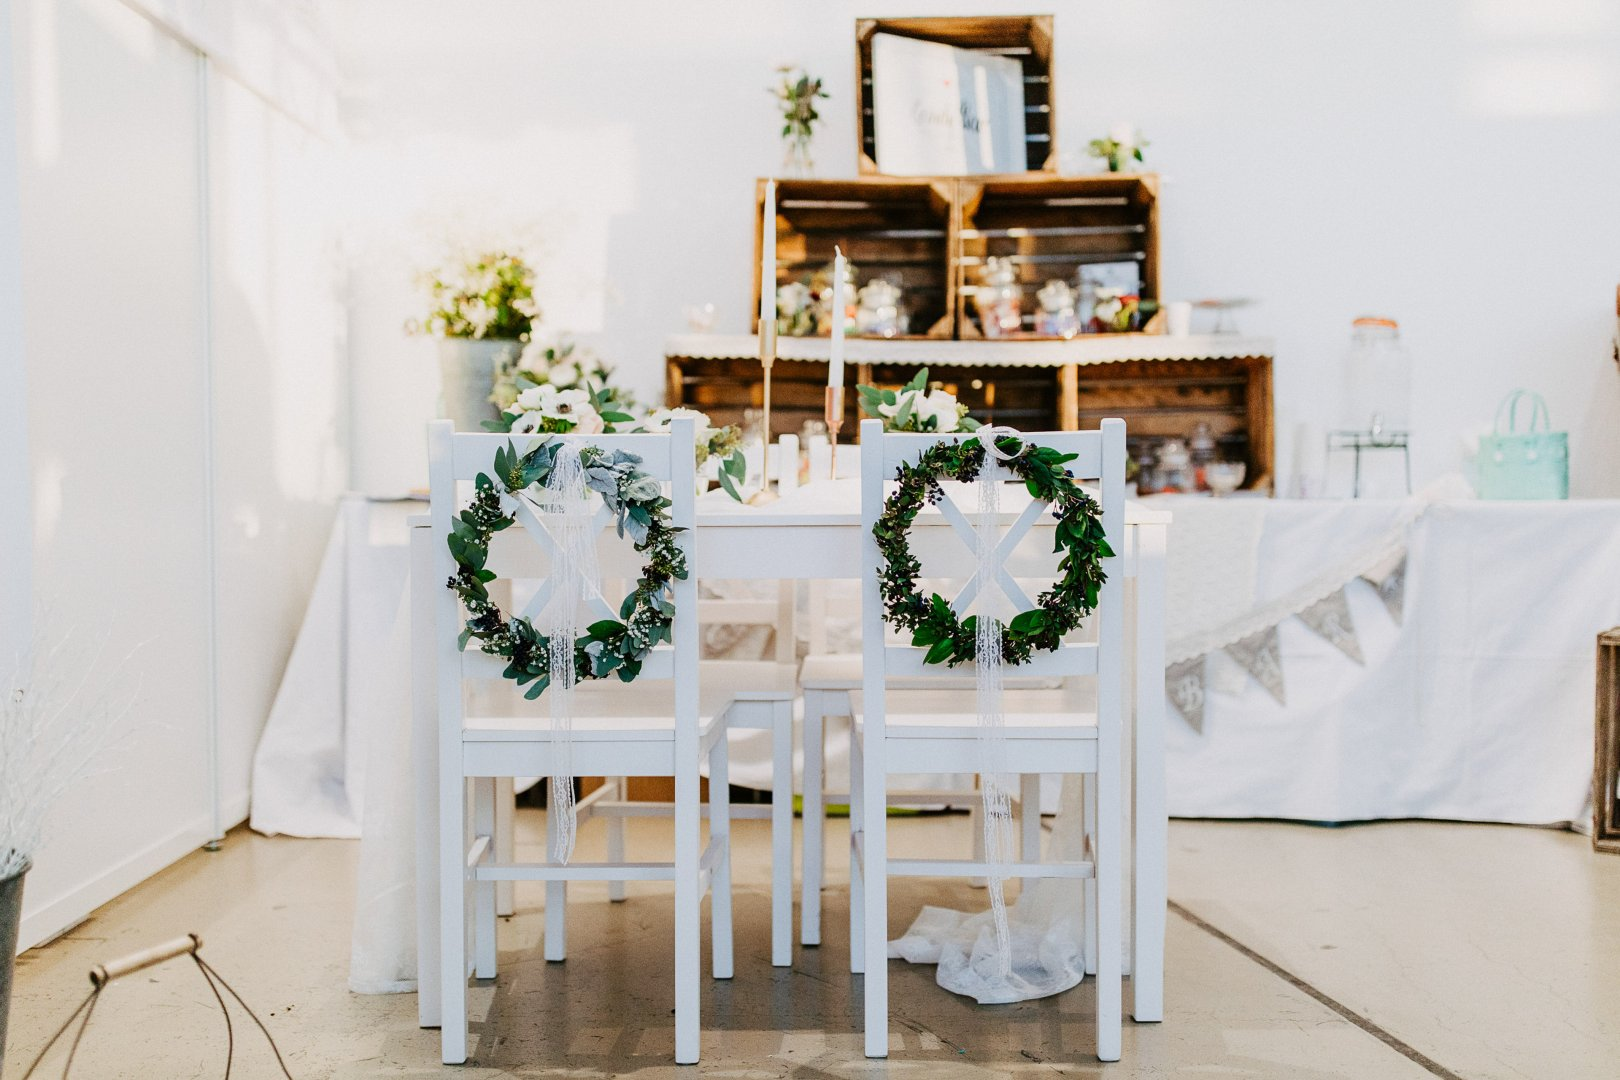 White Furniture Table Room Yellow Chair Interior design Dining room Textile Flower Event Plant Home Ceremony Floristry Houseplant House Shelf Tableware Party